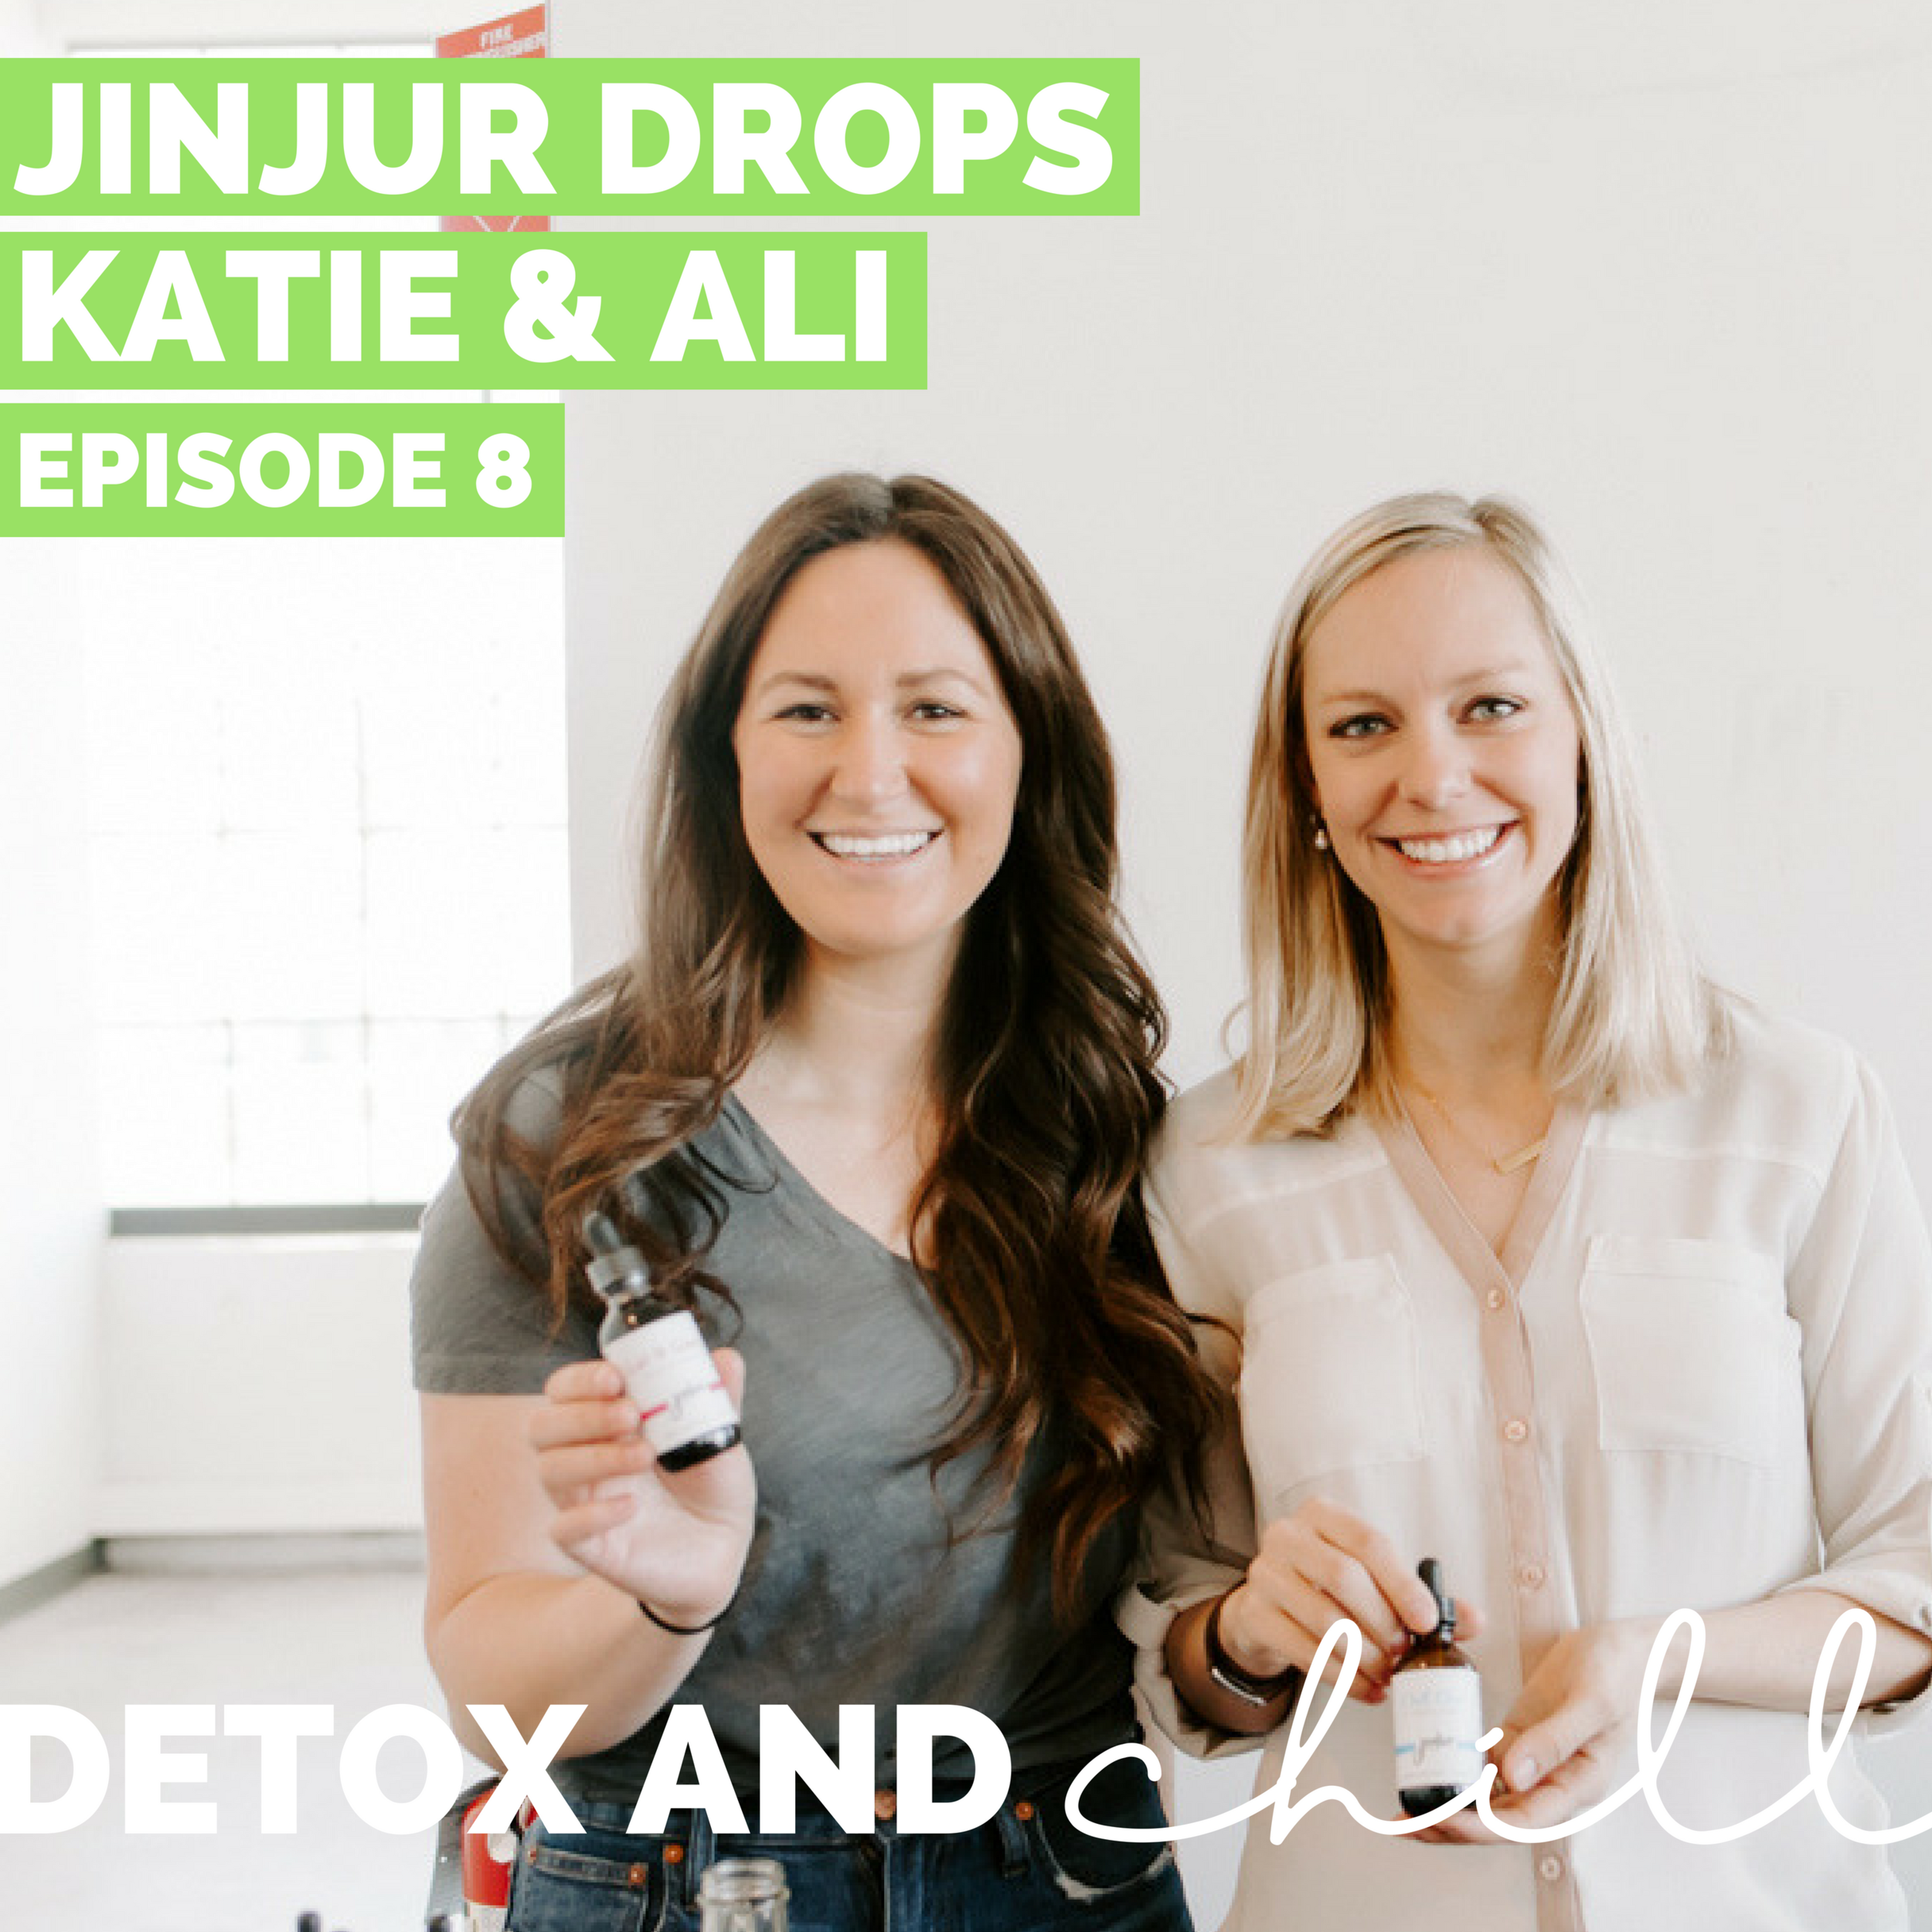 """Episode #8: Katie & Allie // Herbalists, Acupuncturists, & Entrepreneurs // Mastering Your Yin & Yang - Hello lovely listeners! Today we're back with Ali Vander Baan and Katie Pedrick from Yintuition Wellness and V.I.B.E Acupuncture respectively.On this episode, Katie and Ali share with us how their company, Jinjur, was born, how each of the unique blends works, their experience starting their own brand, as well as SO MANY Chinese Medicine facts that were so enlightening and informative, especially for those of us who haven't delved into the Eastern medicine world. We also talk a lot about time management – these ladies balance their careers with starting their new business (and even a new baby for Ali!) in a seamless and impressive way.Katie and Ali were so kind to offer our listeners 15% off of any purchase of Jinjur drops by using the code """"DETOX"""" at checkout.Here's the link to Jinjur shop to check out all of their amazing blends: https://jinjurshop.com.Katie's Practice: https://www.vibecharlestown.comAli's Practice: https://www.yintuitionwellness.com/"""